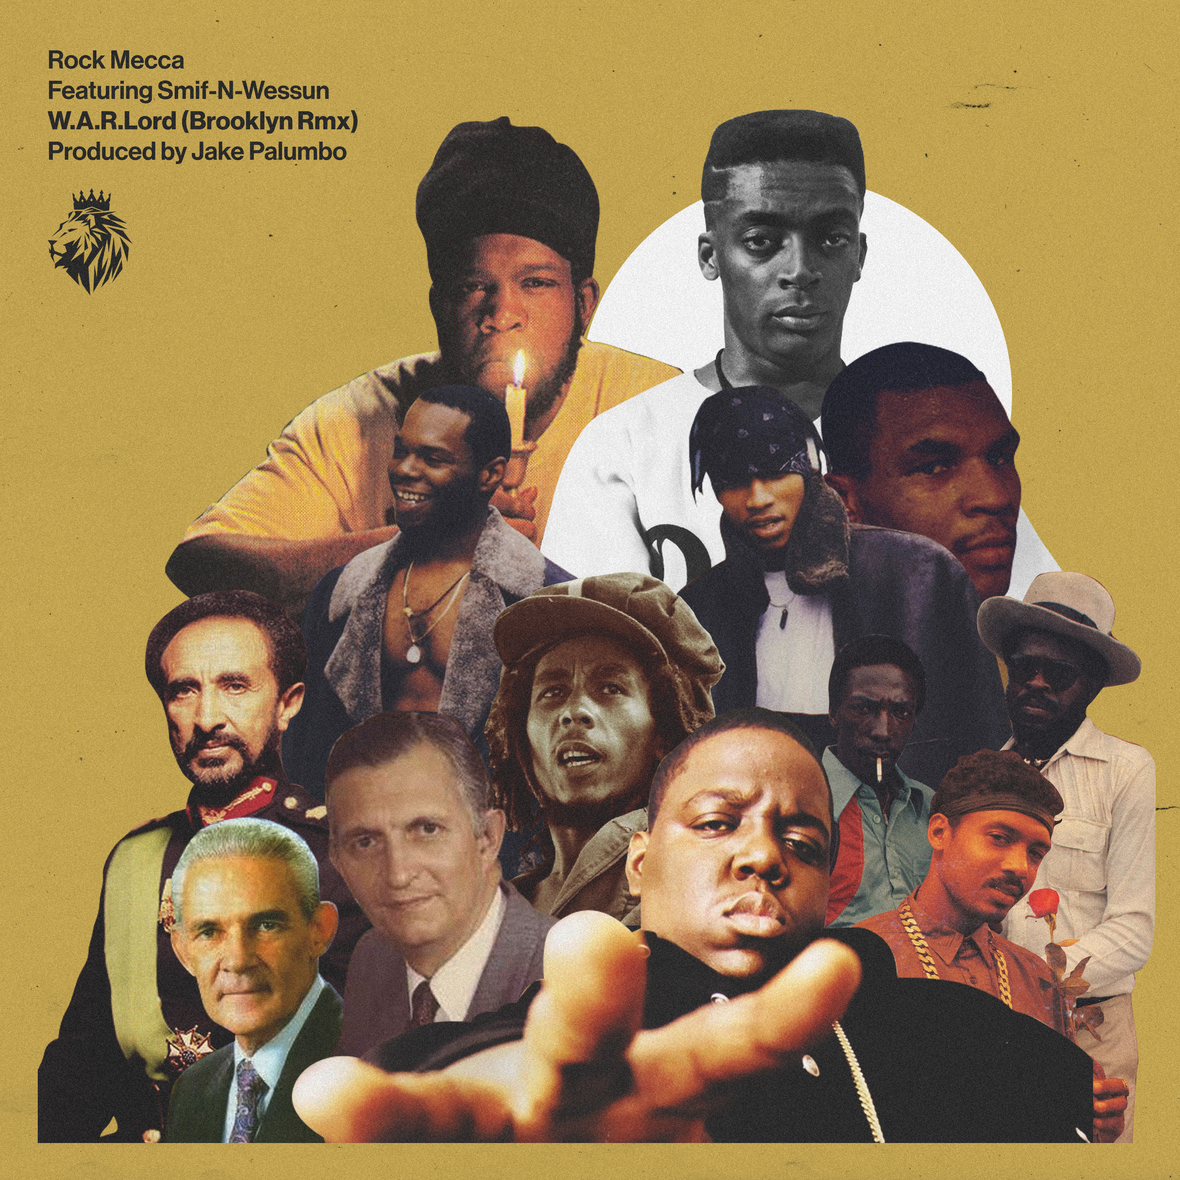 Rock Mecca - Warlord (Brooklyn Remix) feat. Smif n Wessun